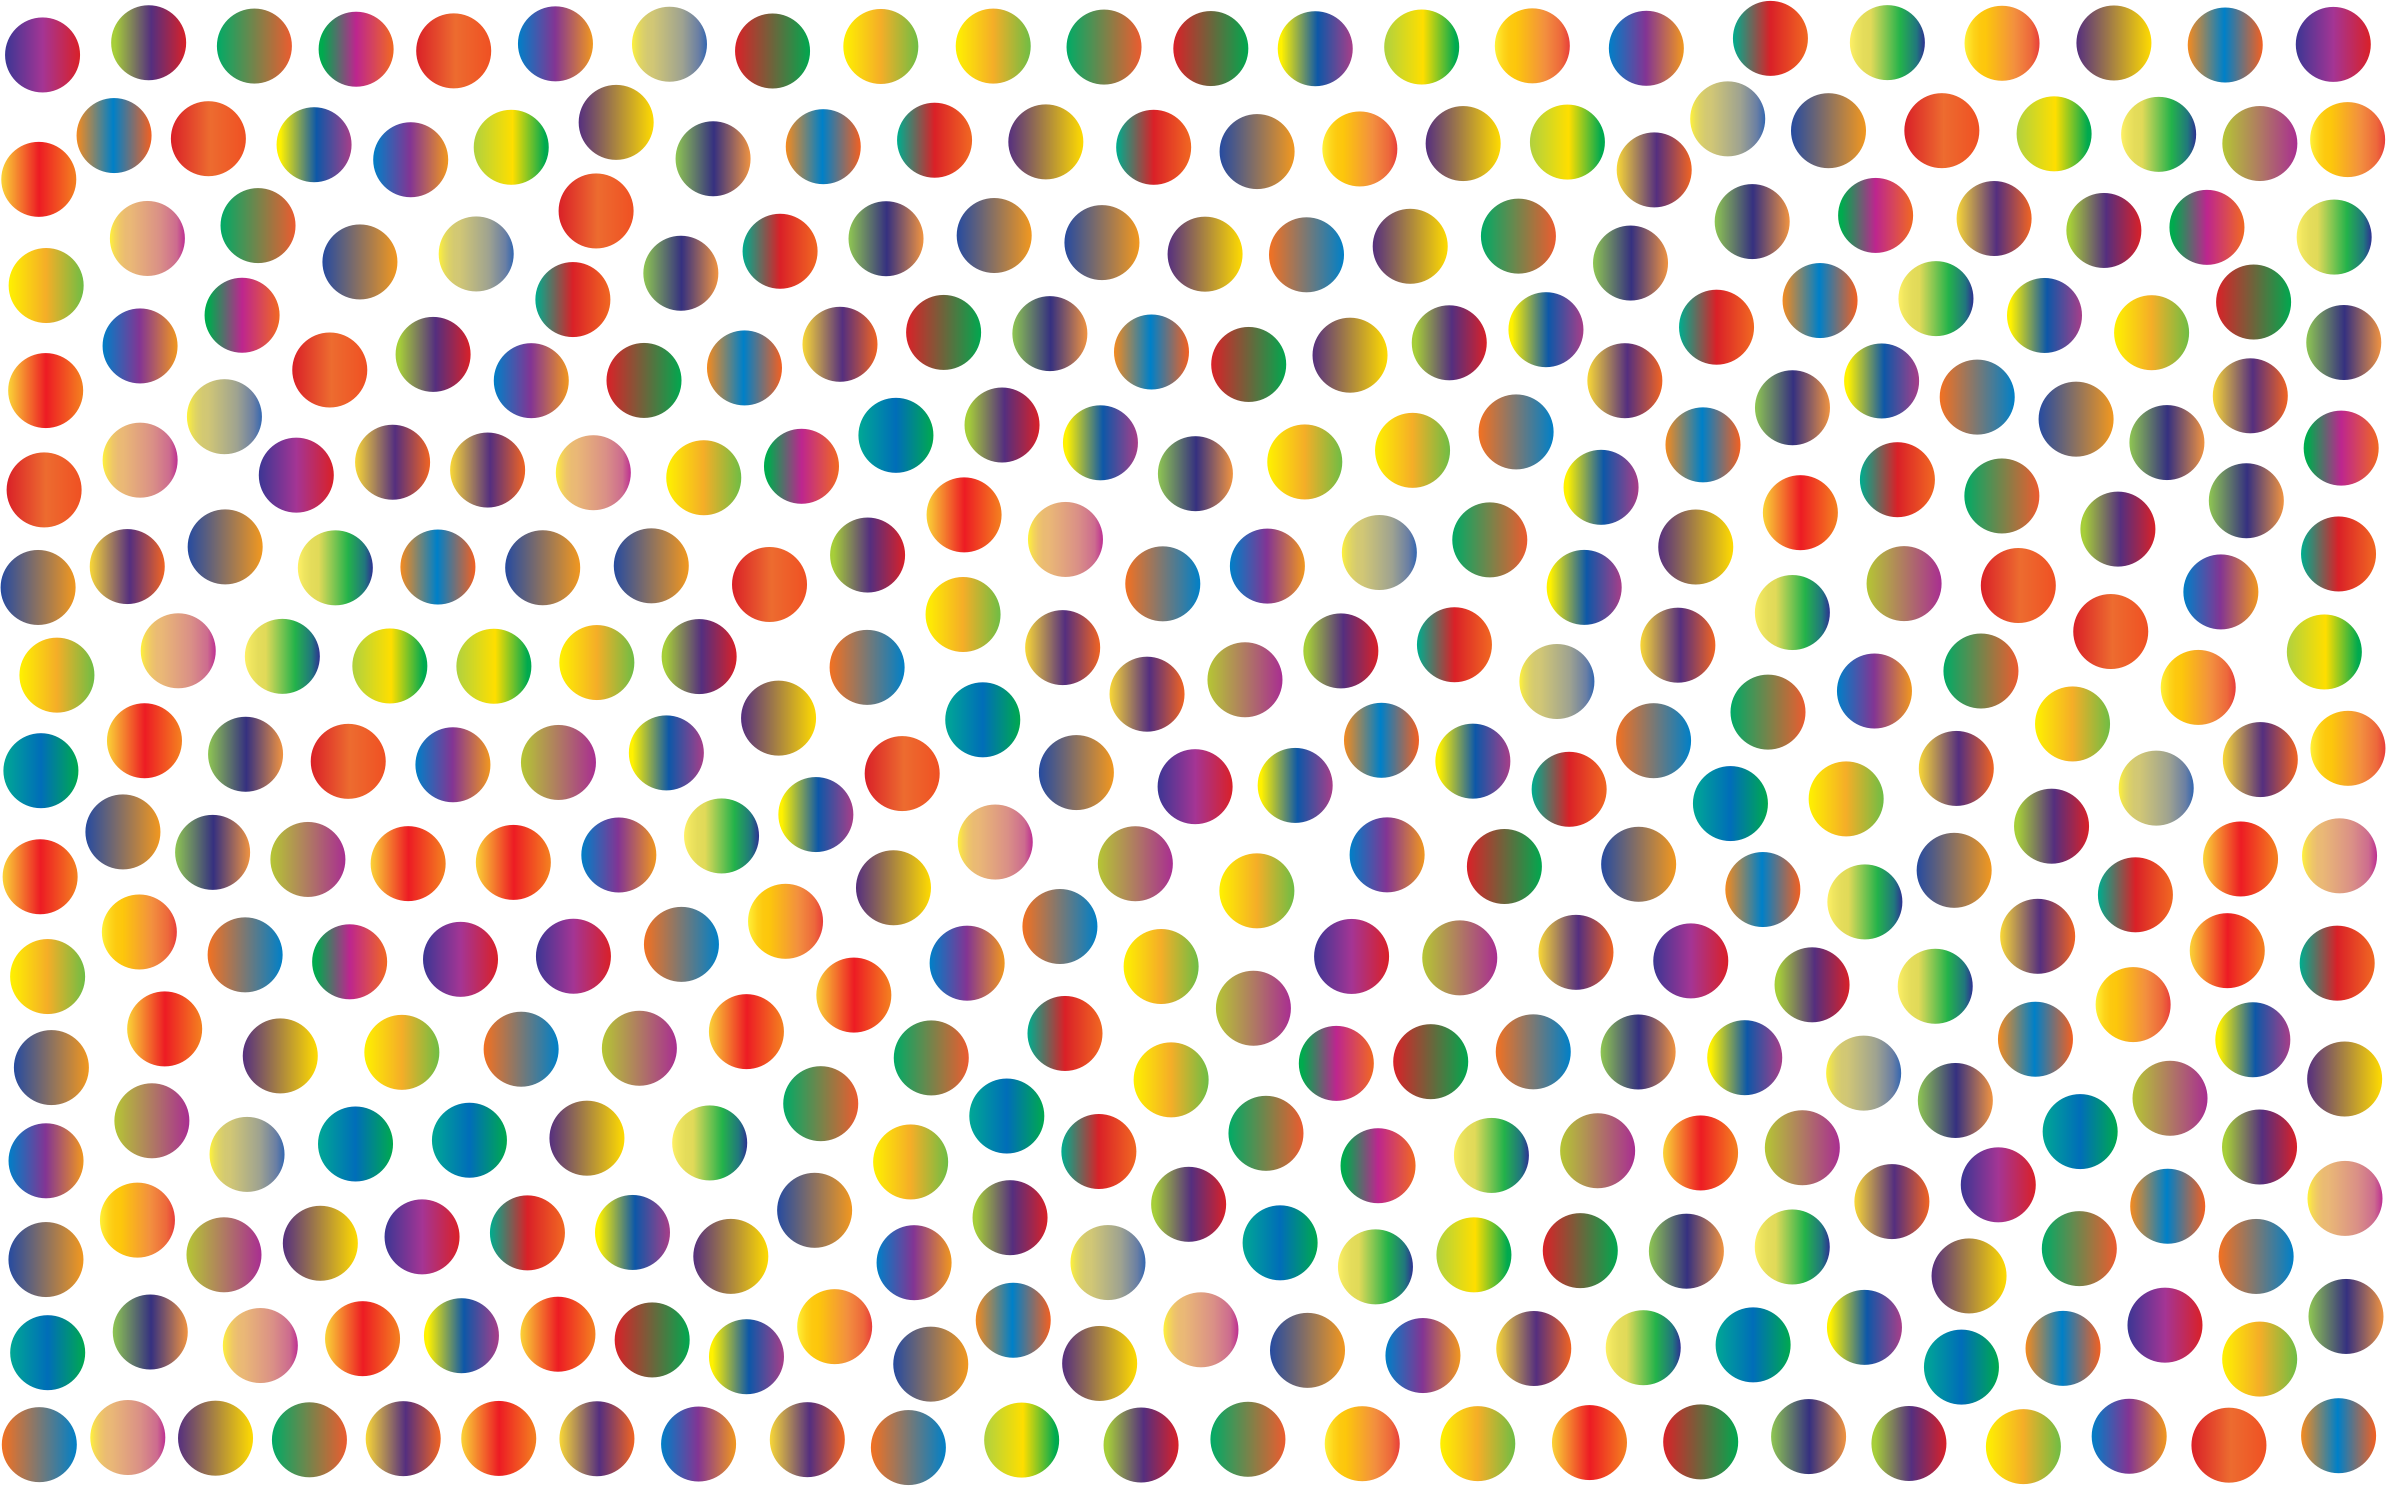 Prismatic Dots Background 5 No Background by GDJ